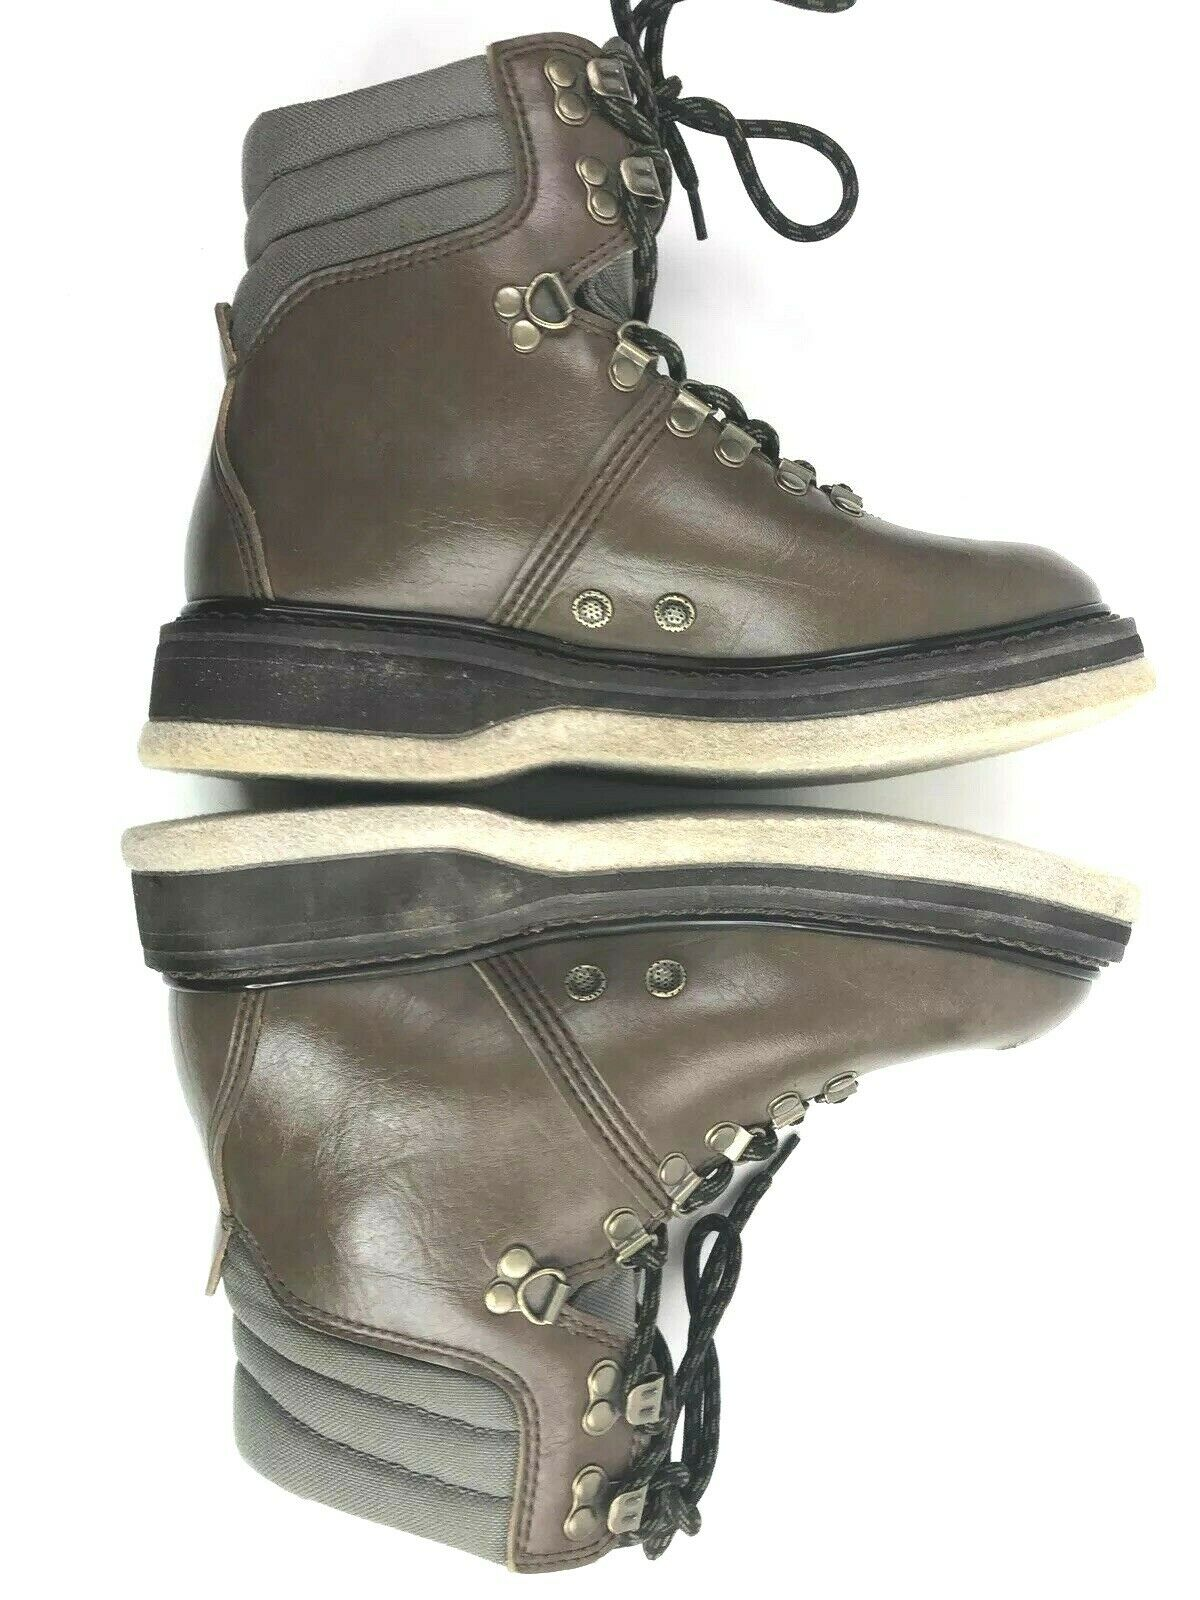 Simms Wading Boots 6 Felt Sole Fly Fishing Leather Mens Freestone Ankle Boot